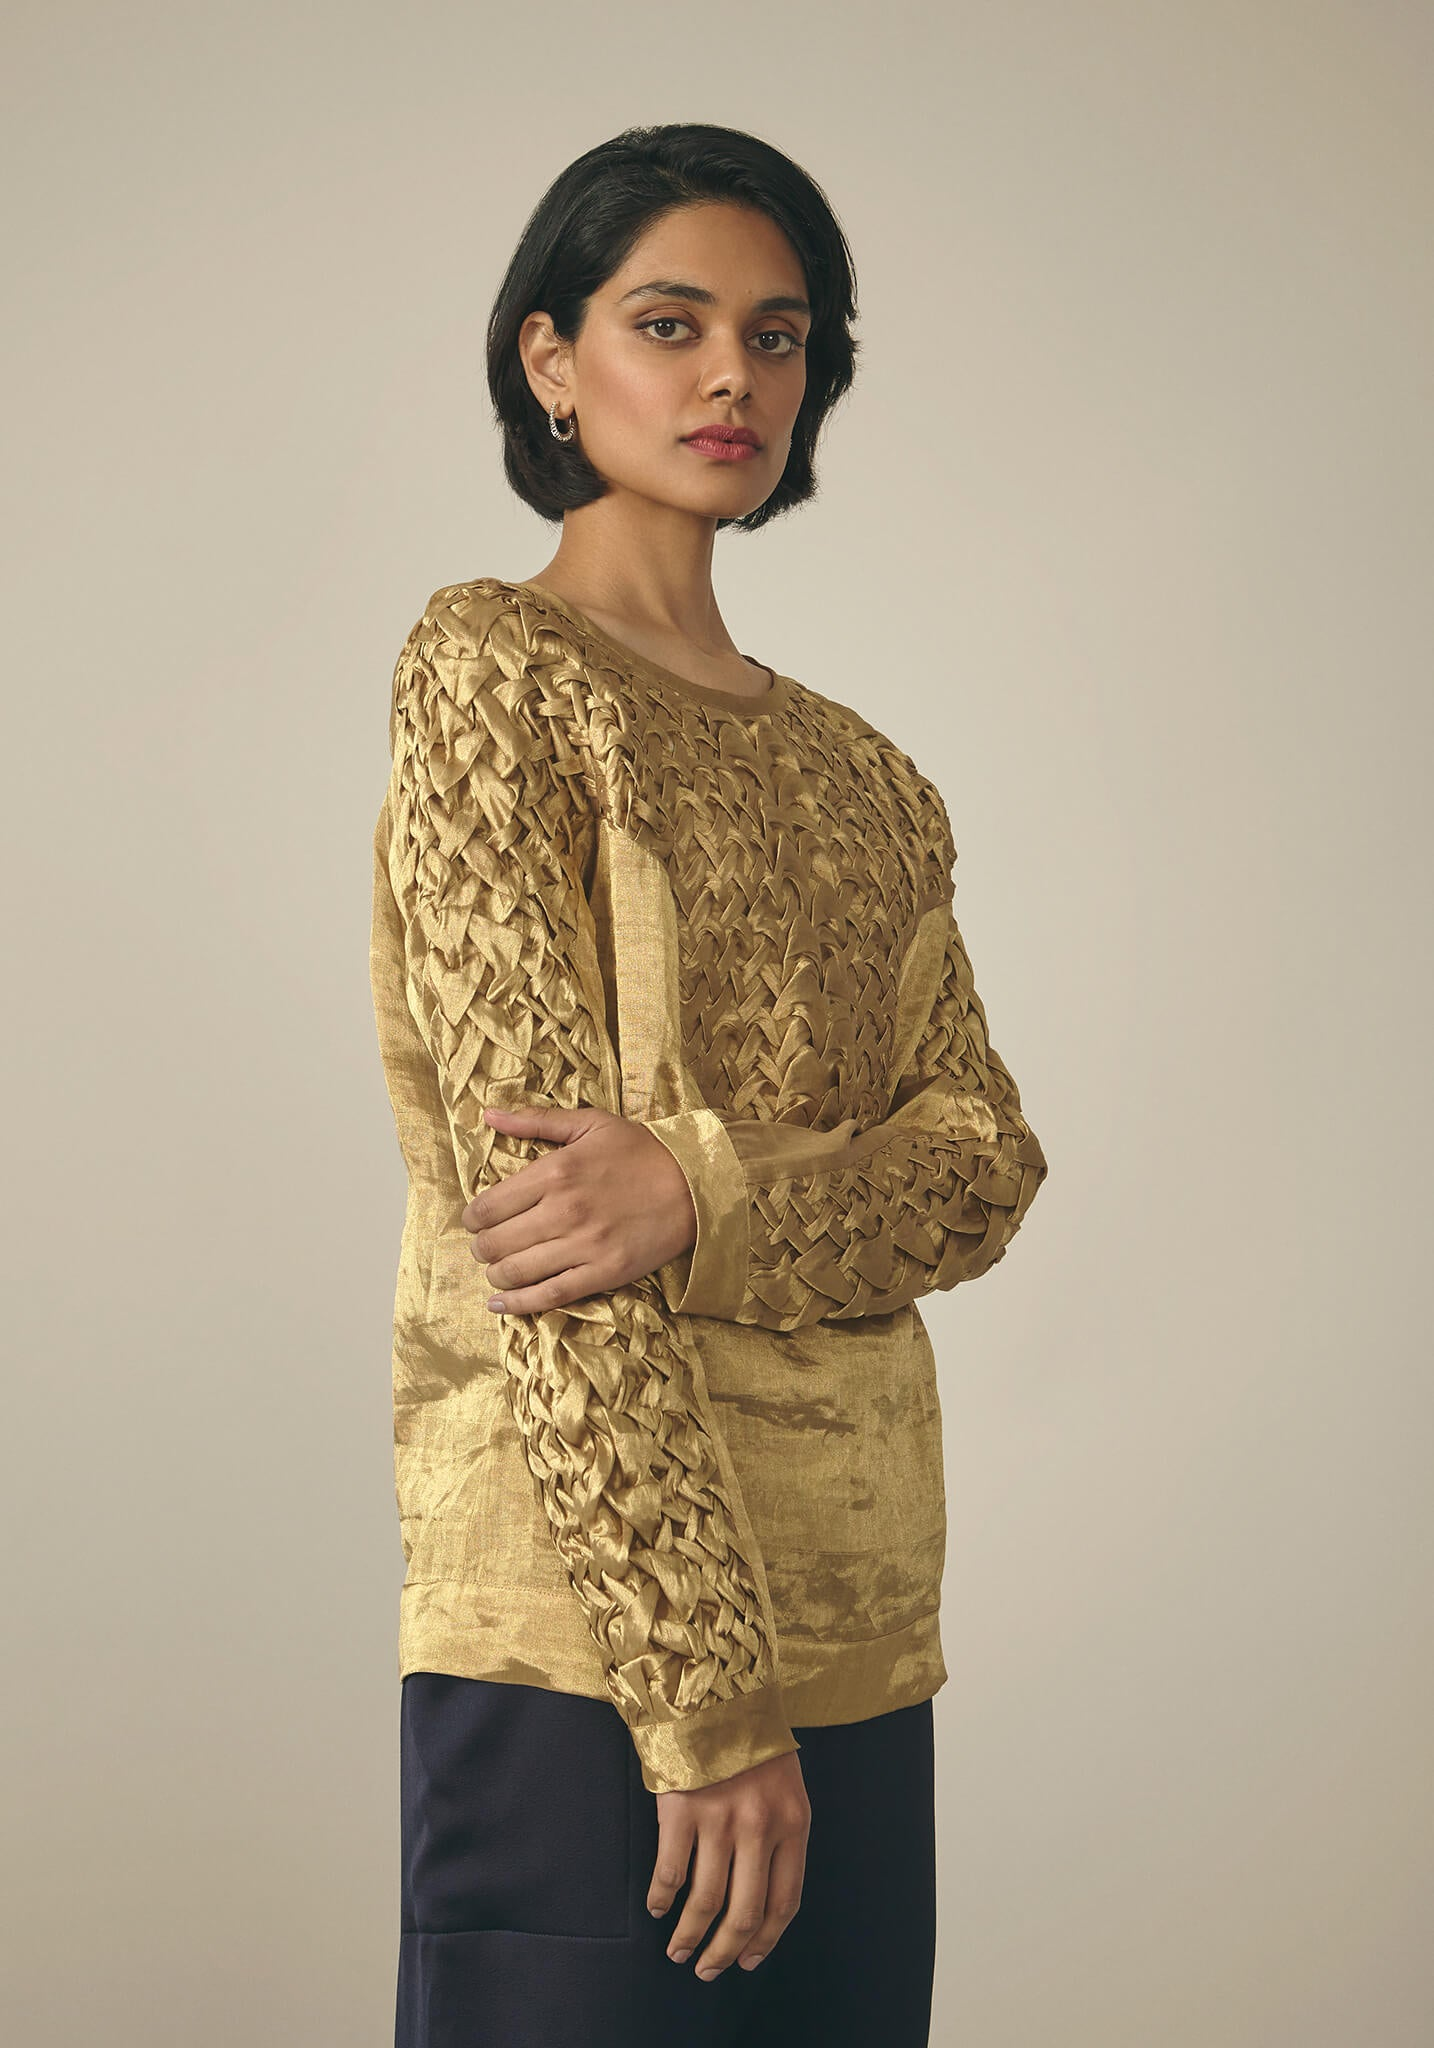 Rashmi Varma, Gold Smock Top